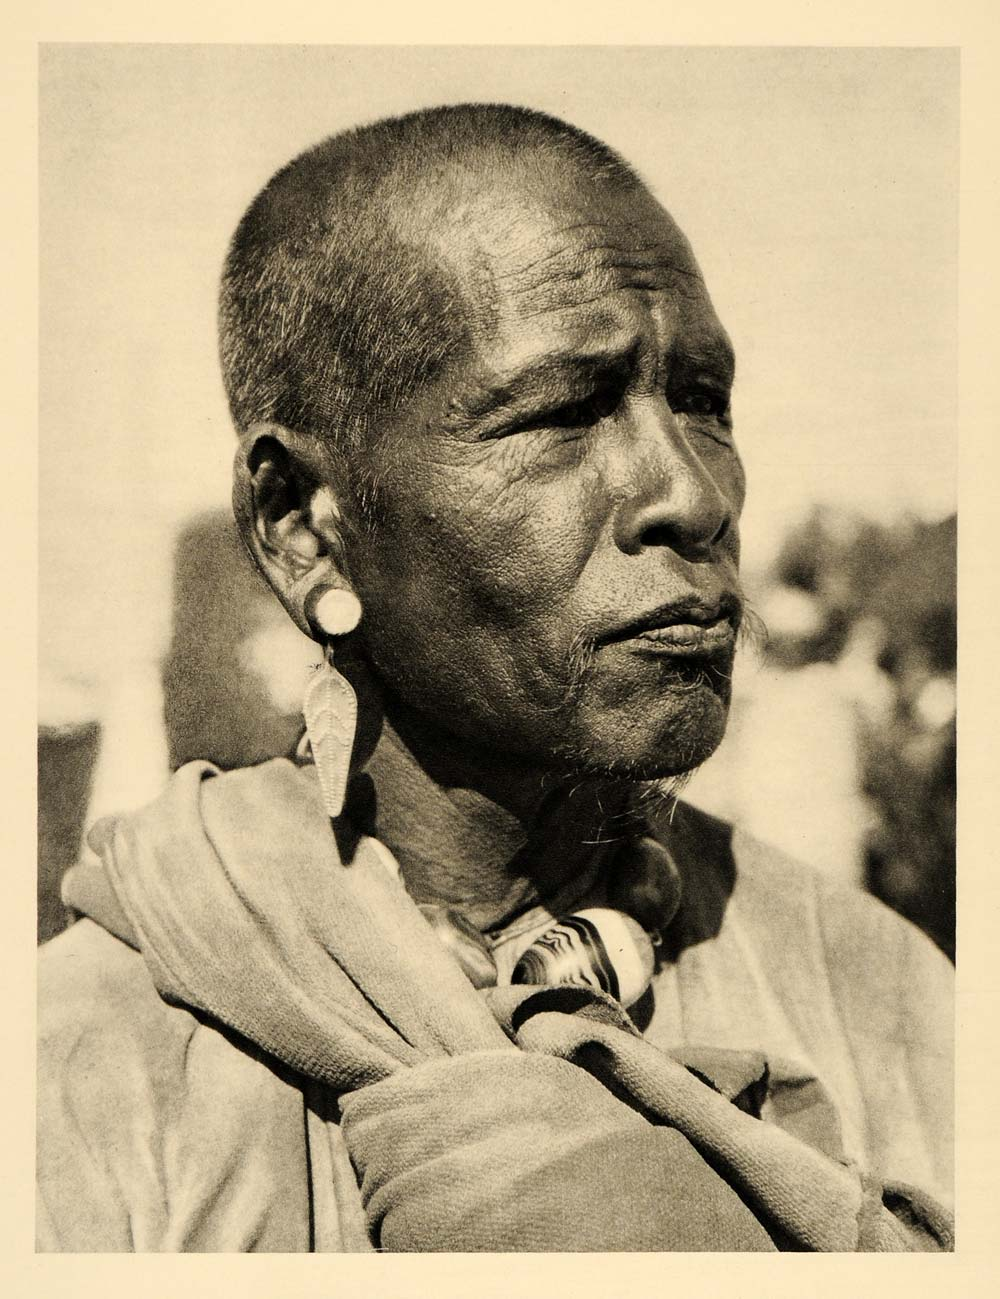 1935 Chieftain Portrait Man Burma Myanmar Hurlimann - ORIGINAL PHOTOGRAVURE PTW2